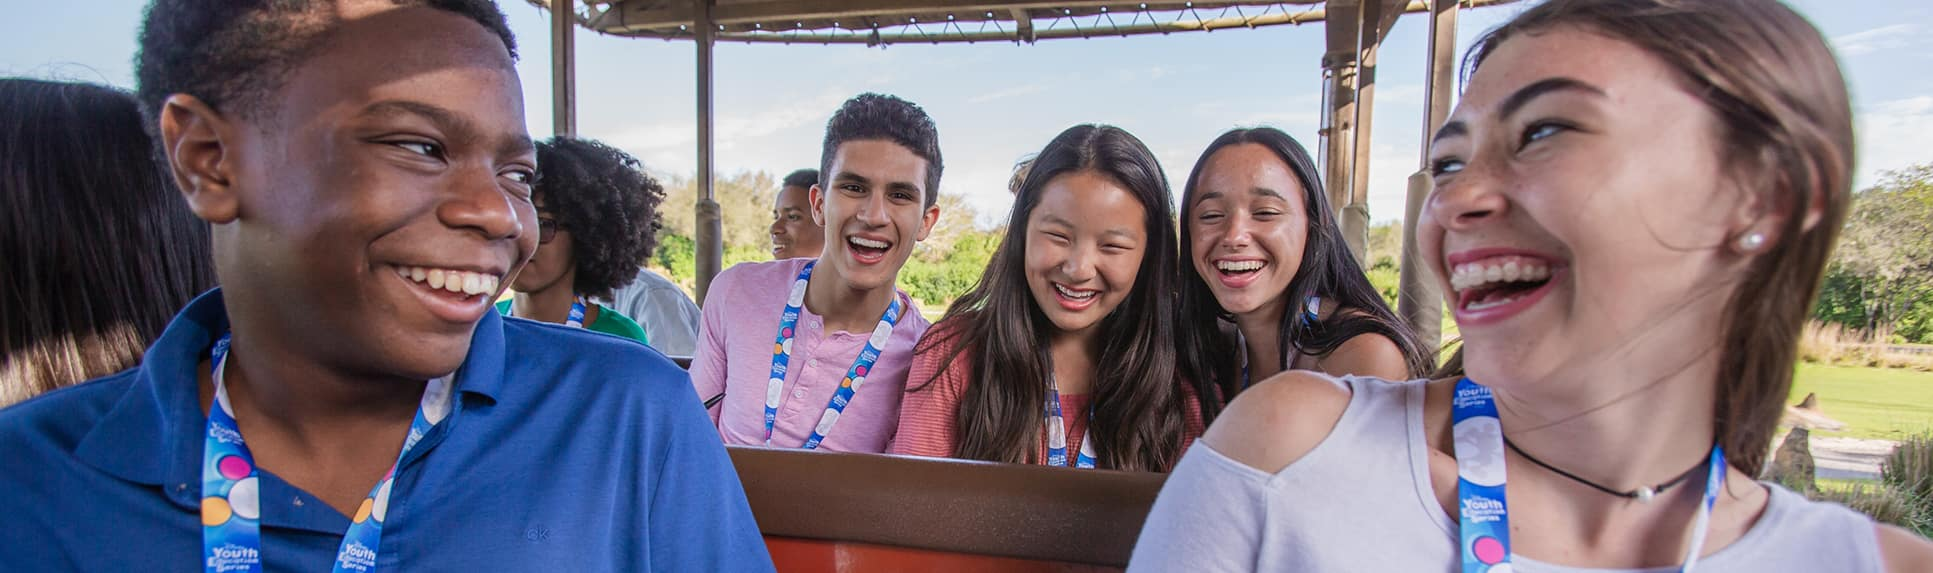 A group of teenagers in an open-air vehicle smiling at each other as they ride through a savanna